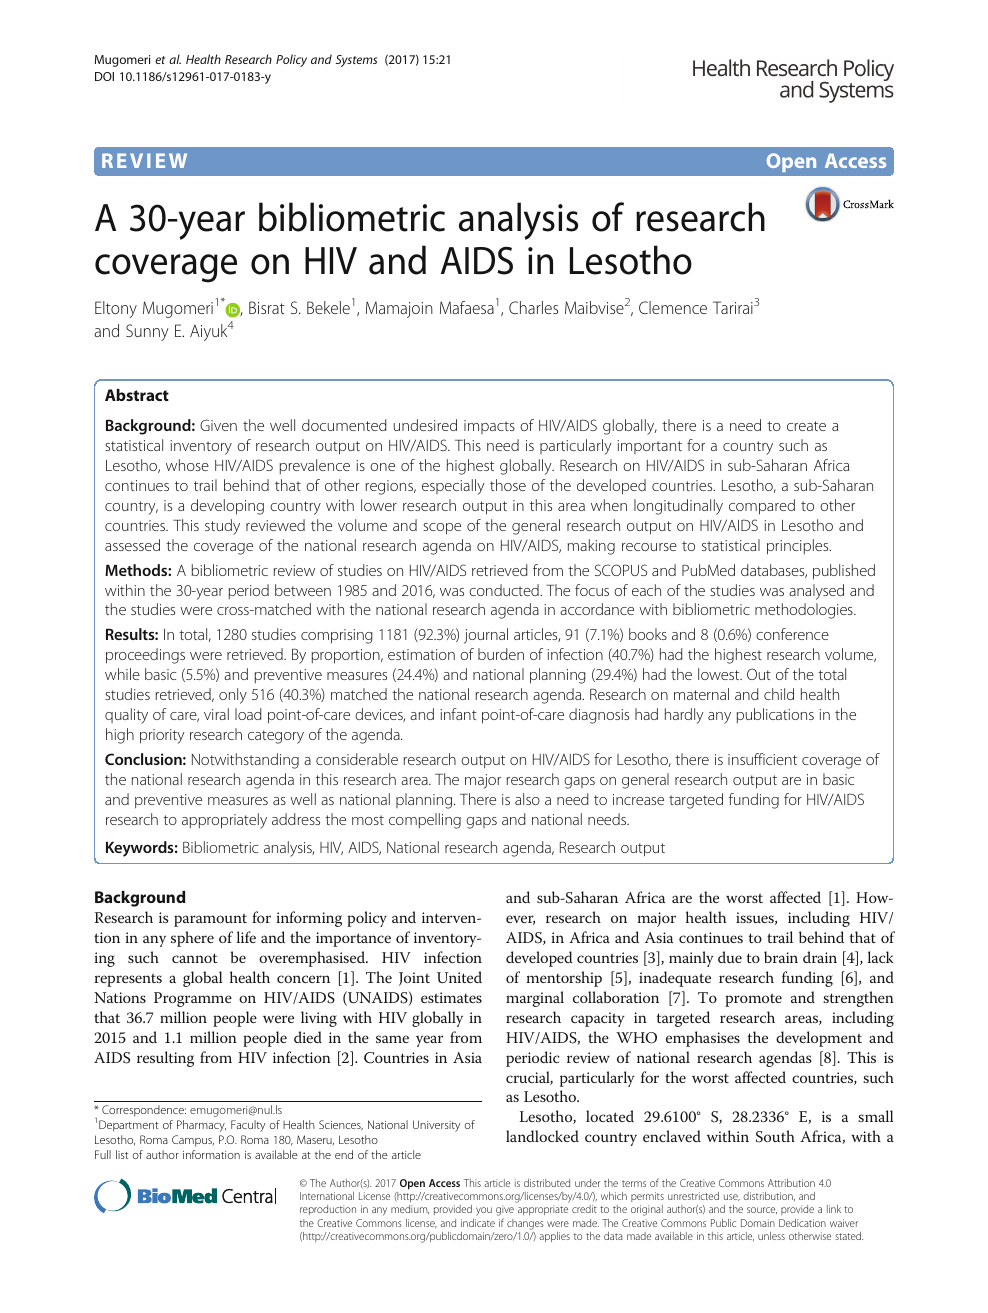 A Year Bibliometric Analysis Of Research Coverage On Hiv And Aids  Read Paper